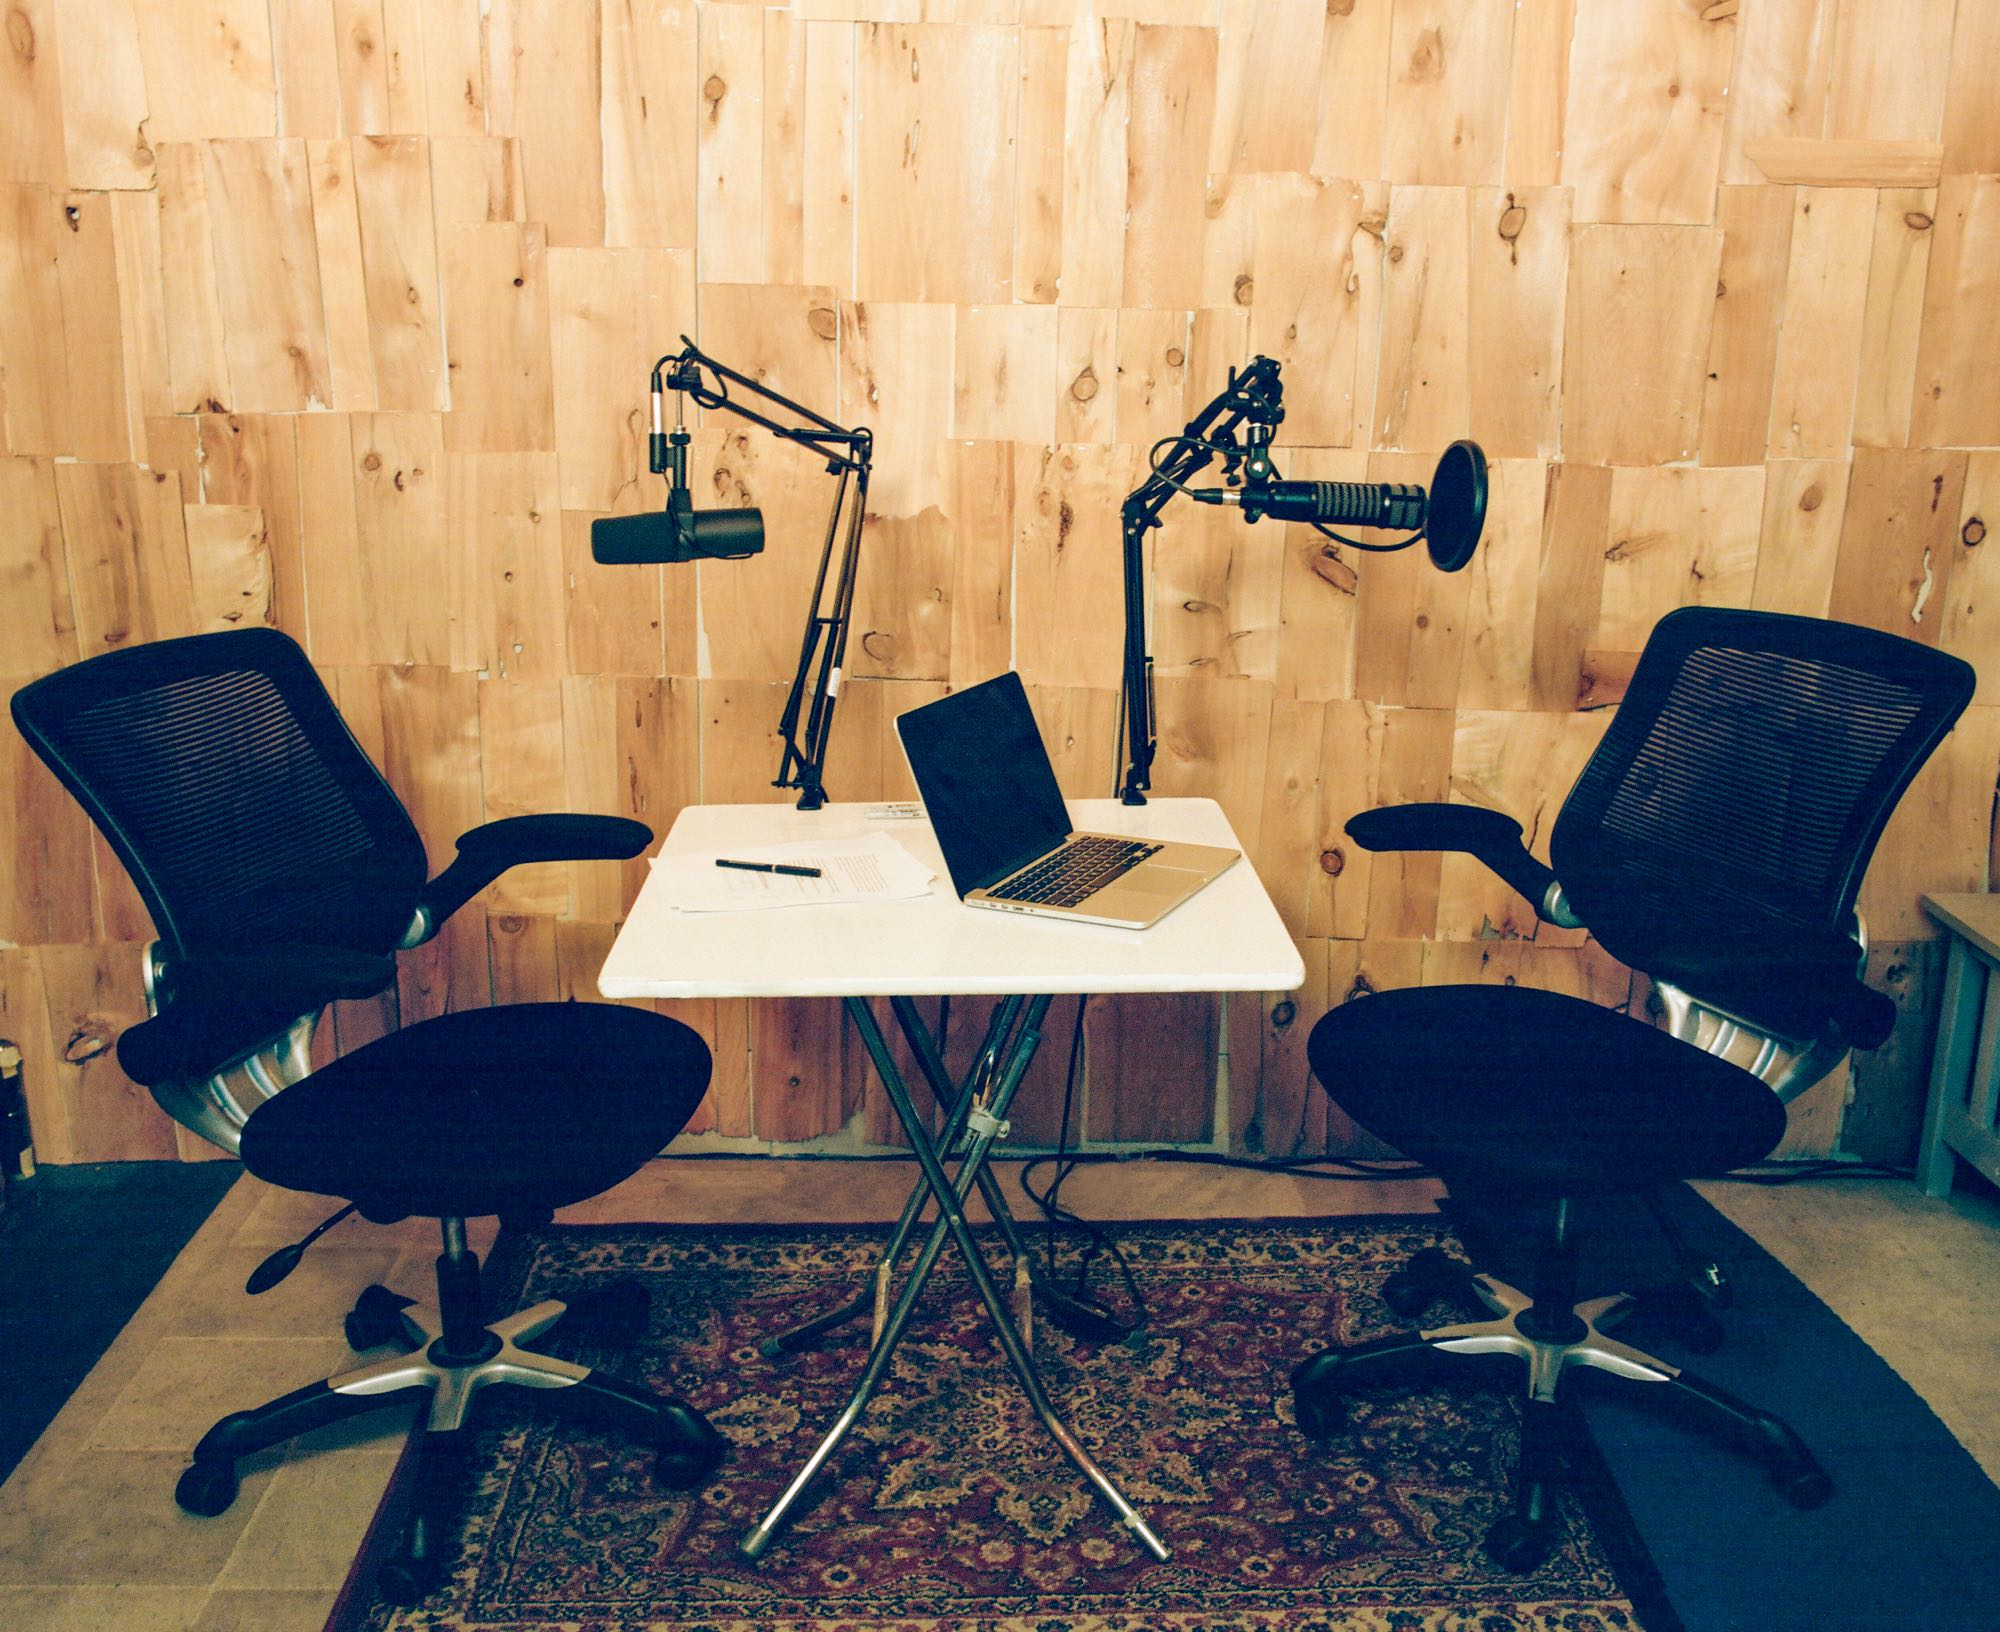 Podcast Setup with Shure SM7 and EV RE20 in Look to Listen Studios Live Room, close